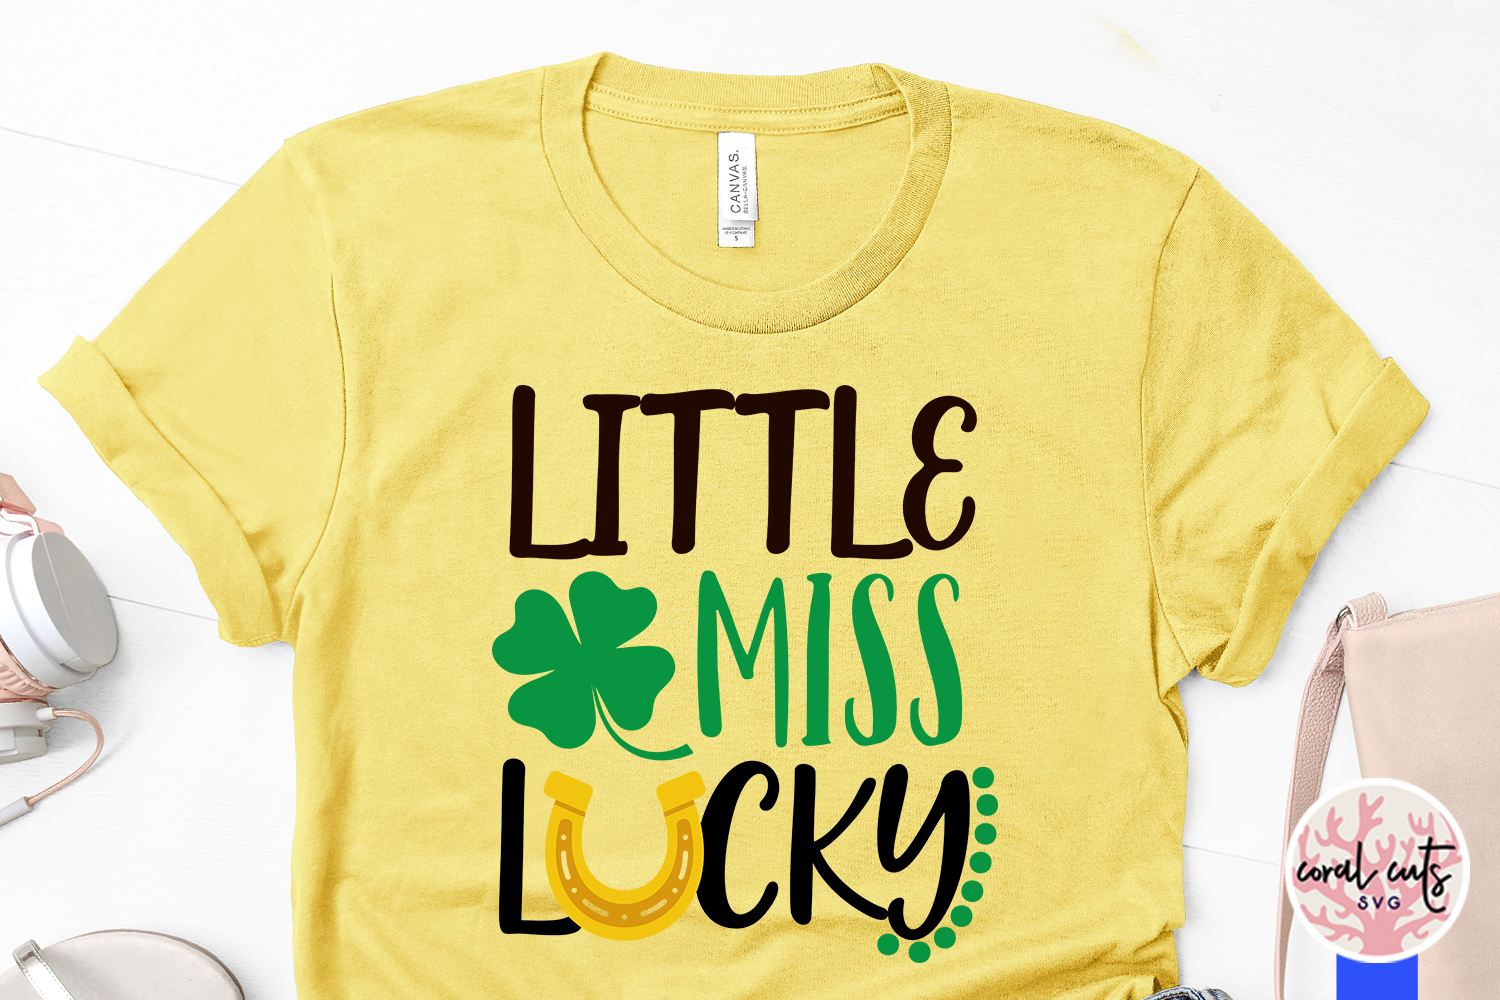 Little miss lucky - St. Patrick's Day SVG EPS DXF PNG example image 3